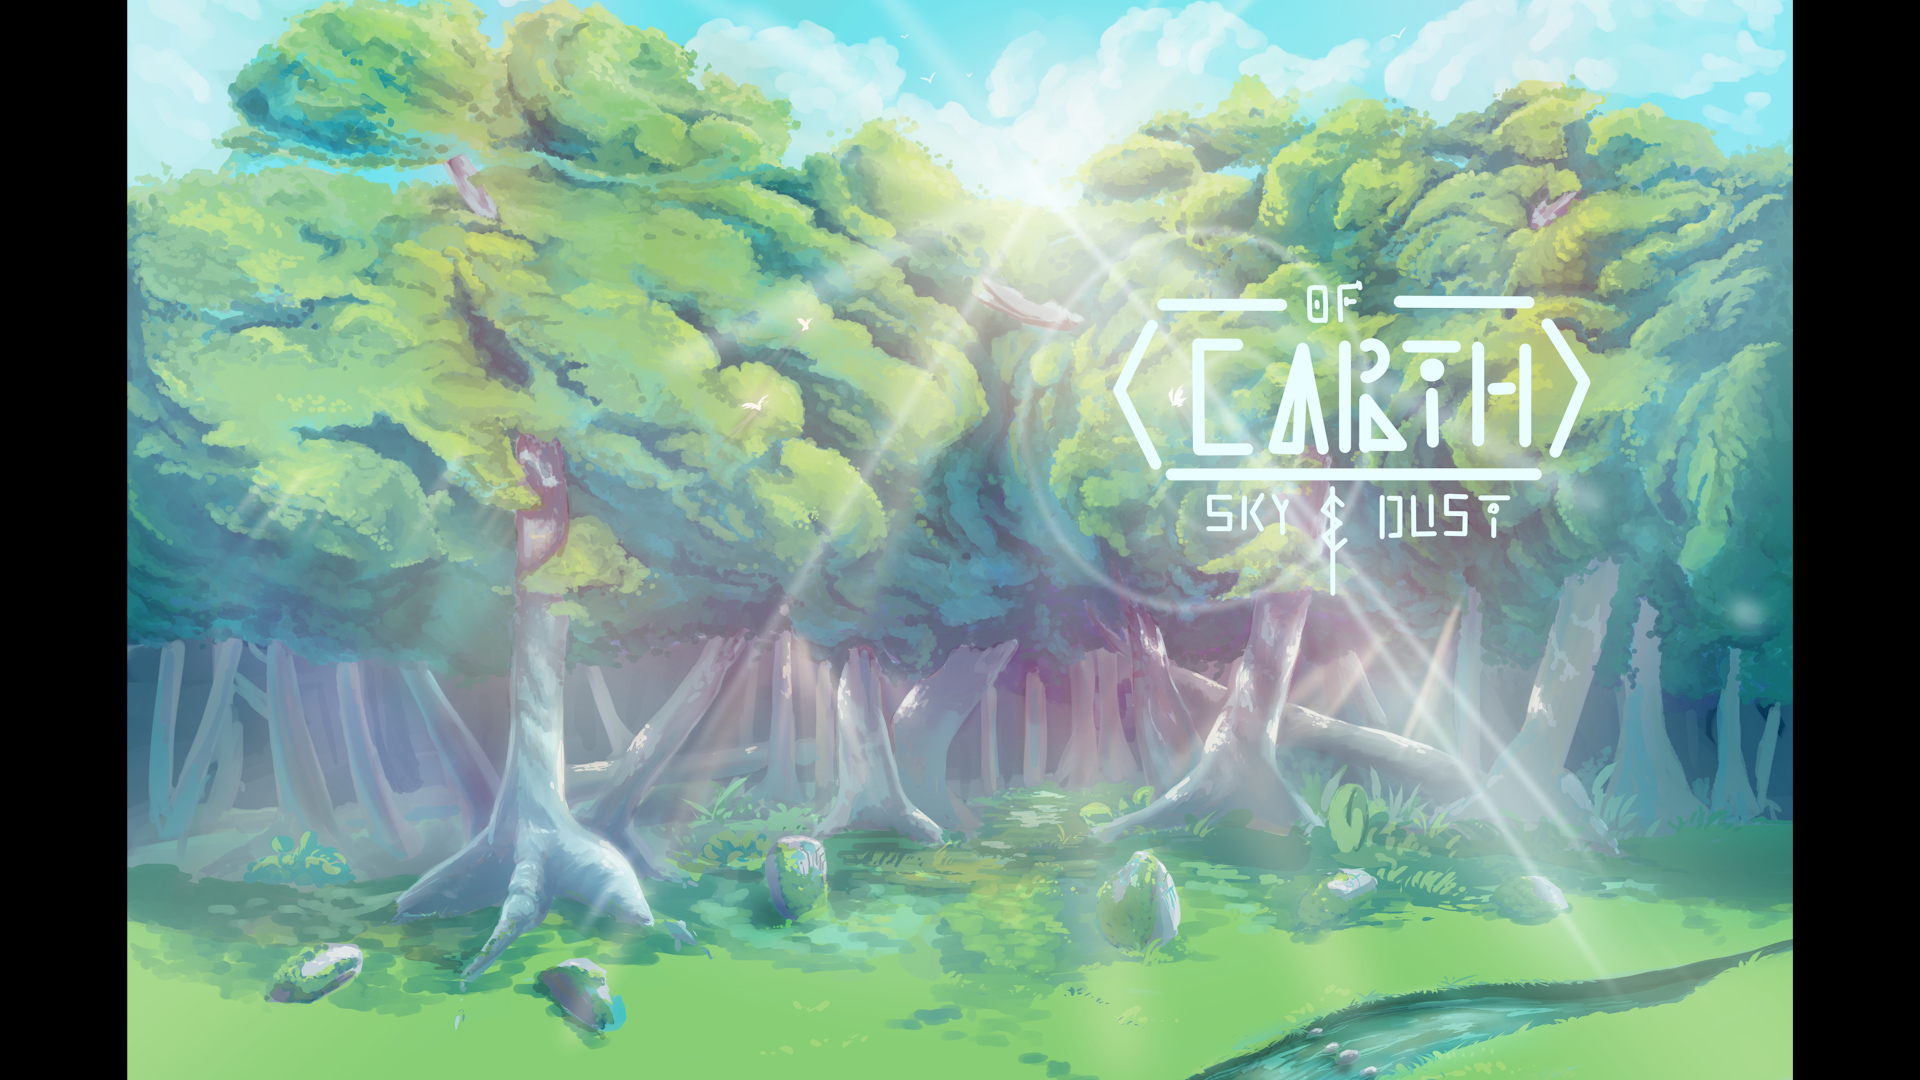 New Short Comic! Of Earth: Sky & Dust | Making the Cover Artwork